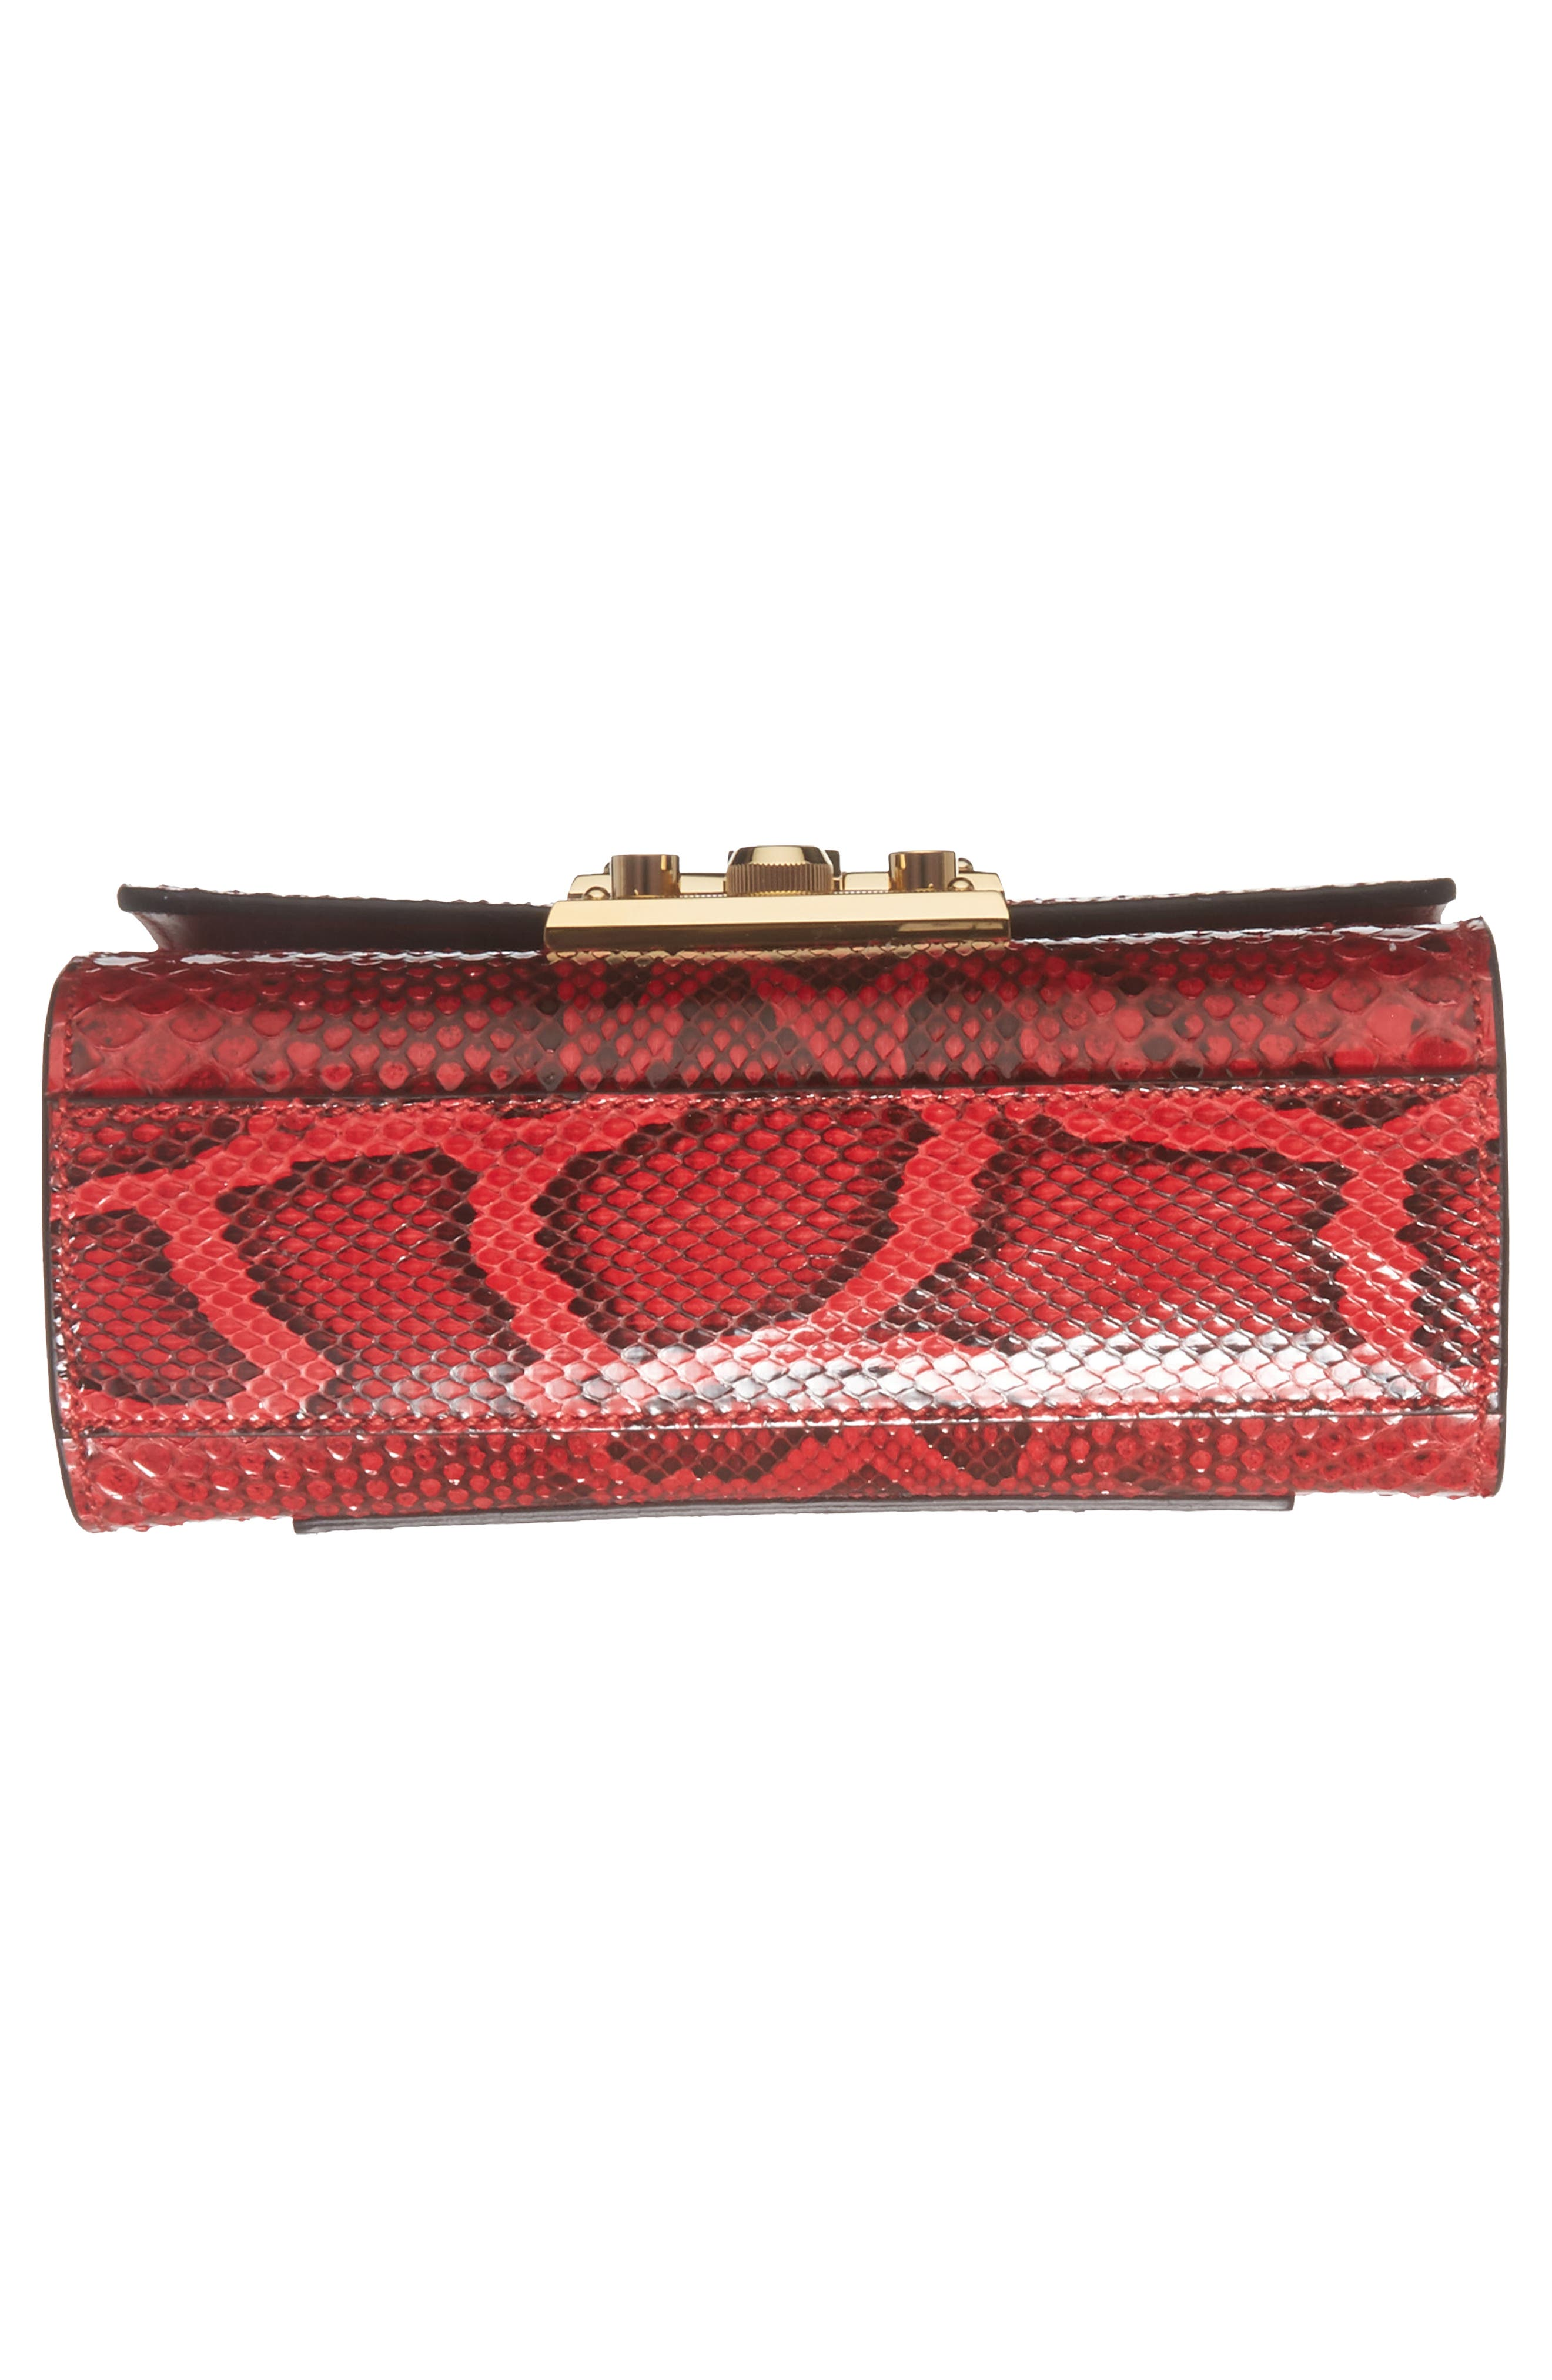 Small Padlock - Genuine Python Shoulder Bag,                             Alternate thumbnail 6, color,                             Hibiscus Red